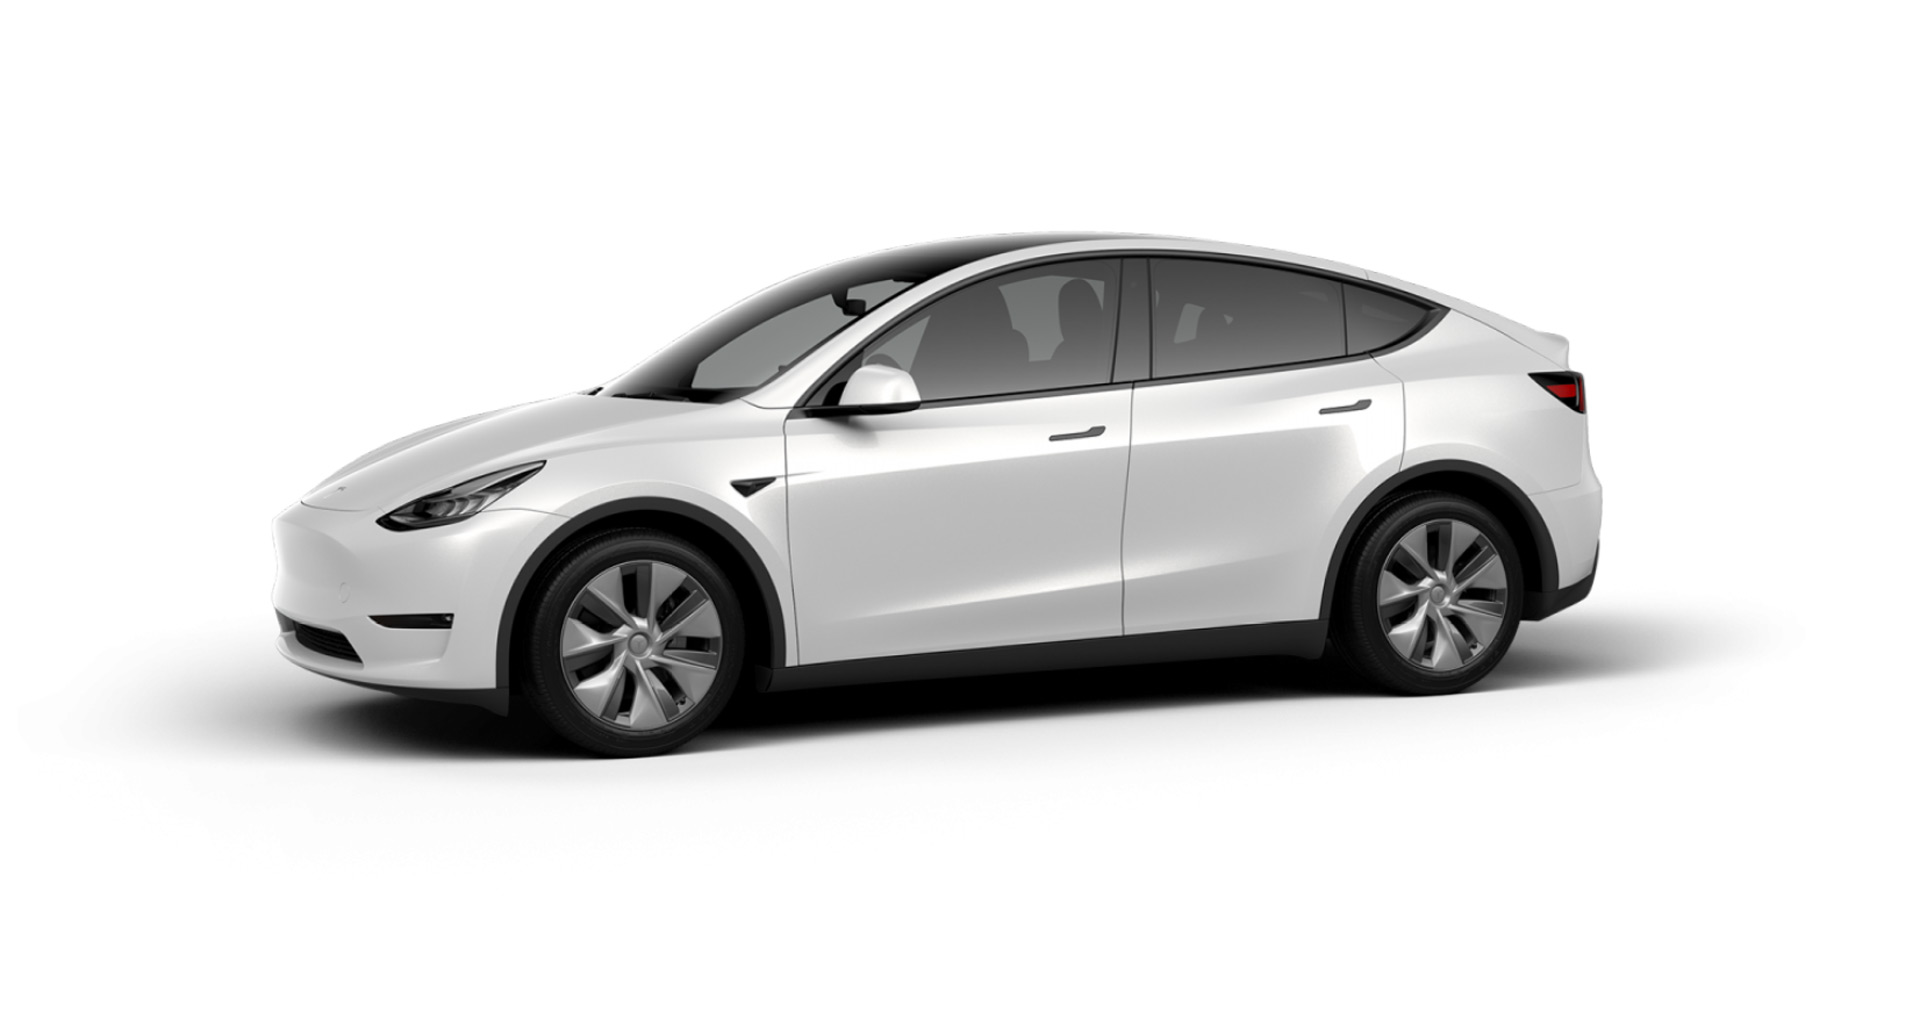 2021 Tesla Model Y Review, Ratings, Specs, Prices, and Photos - The Car Connection